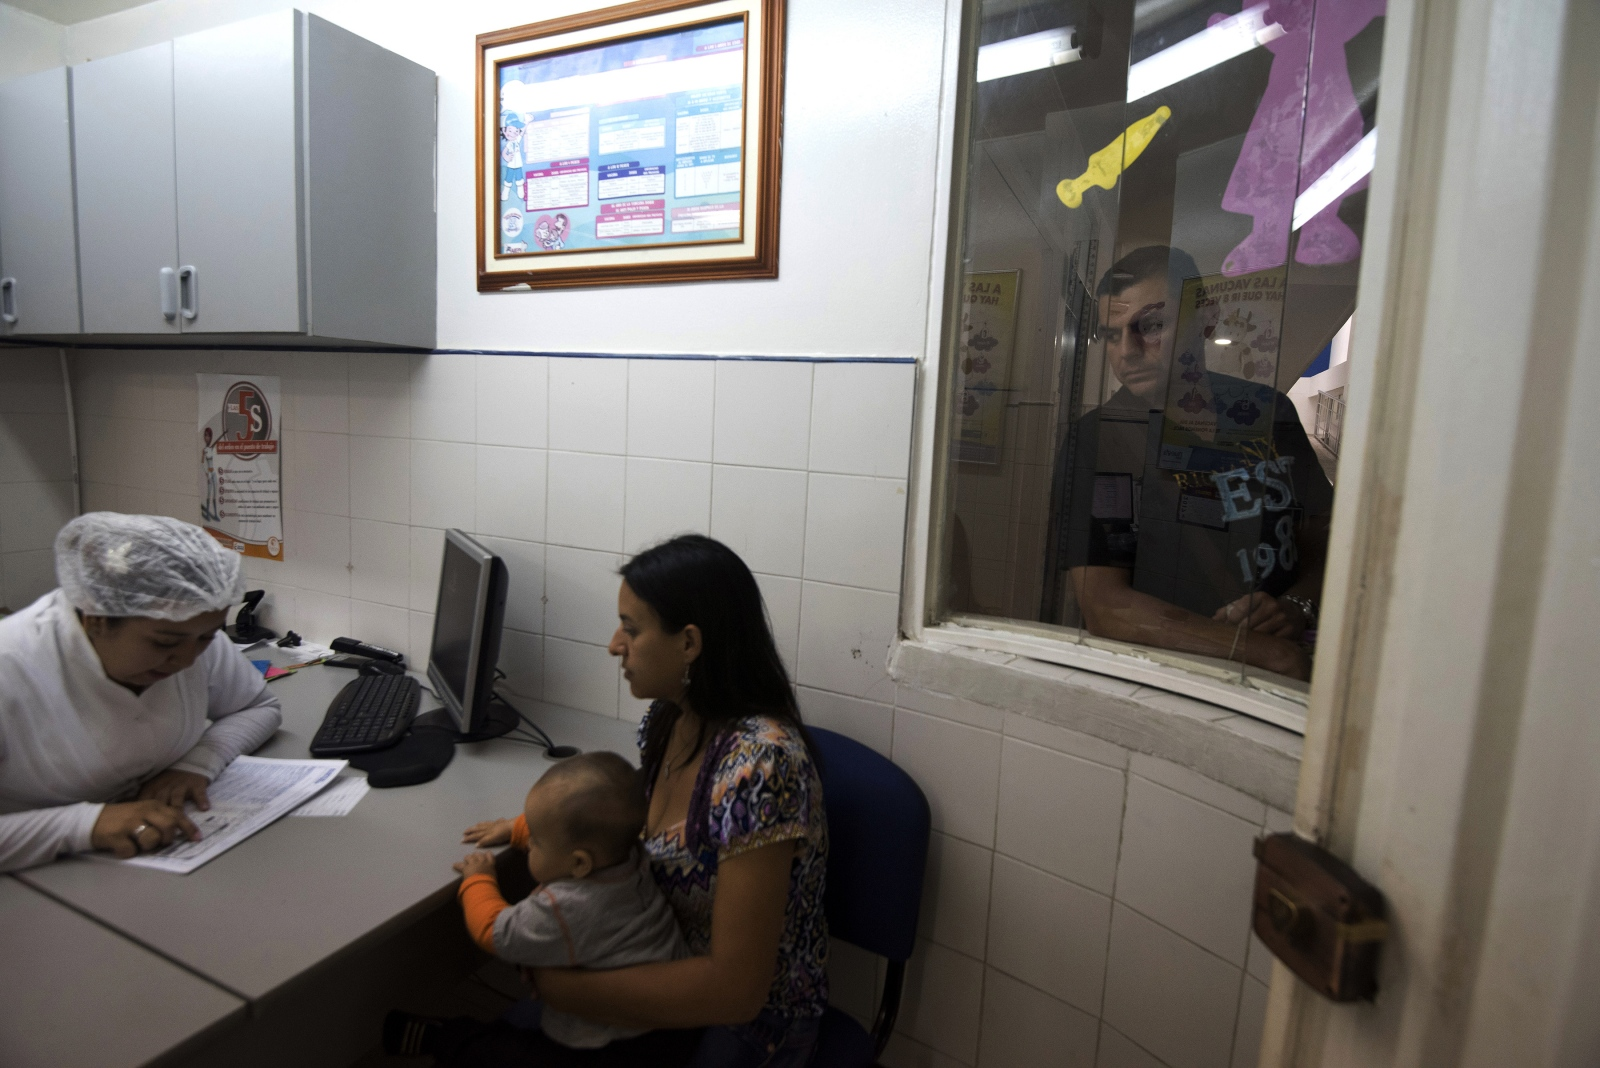 A Venezuelan mother and her child receive instructions by the nurse of Villa del Rosario hospital about a vaccine for the child the father waits, hospitals in Cucuta can't attend the hundred of Venezuelans arriving  on  March, 2017 in Cucuta, Colombia